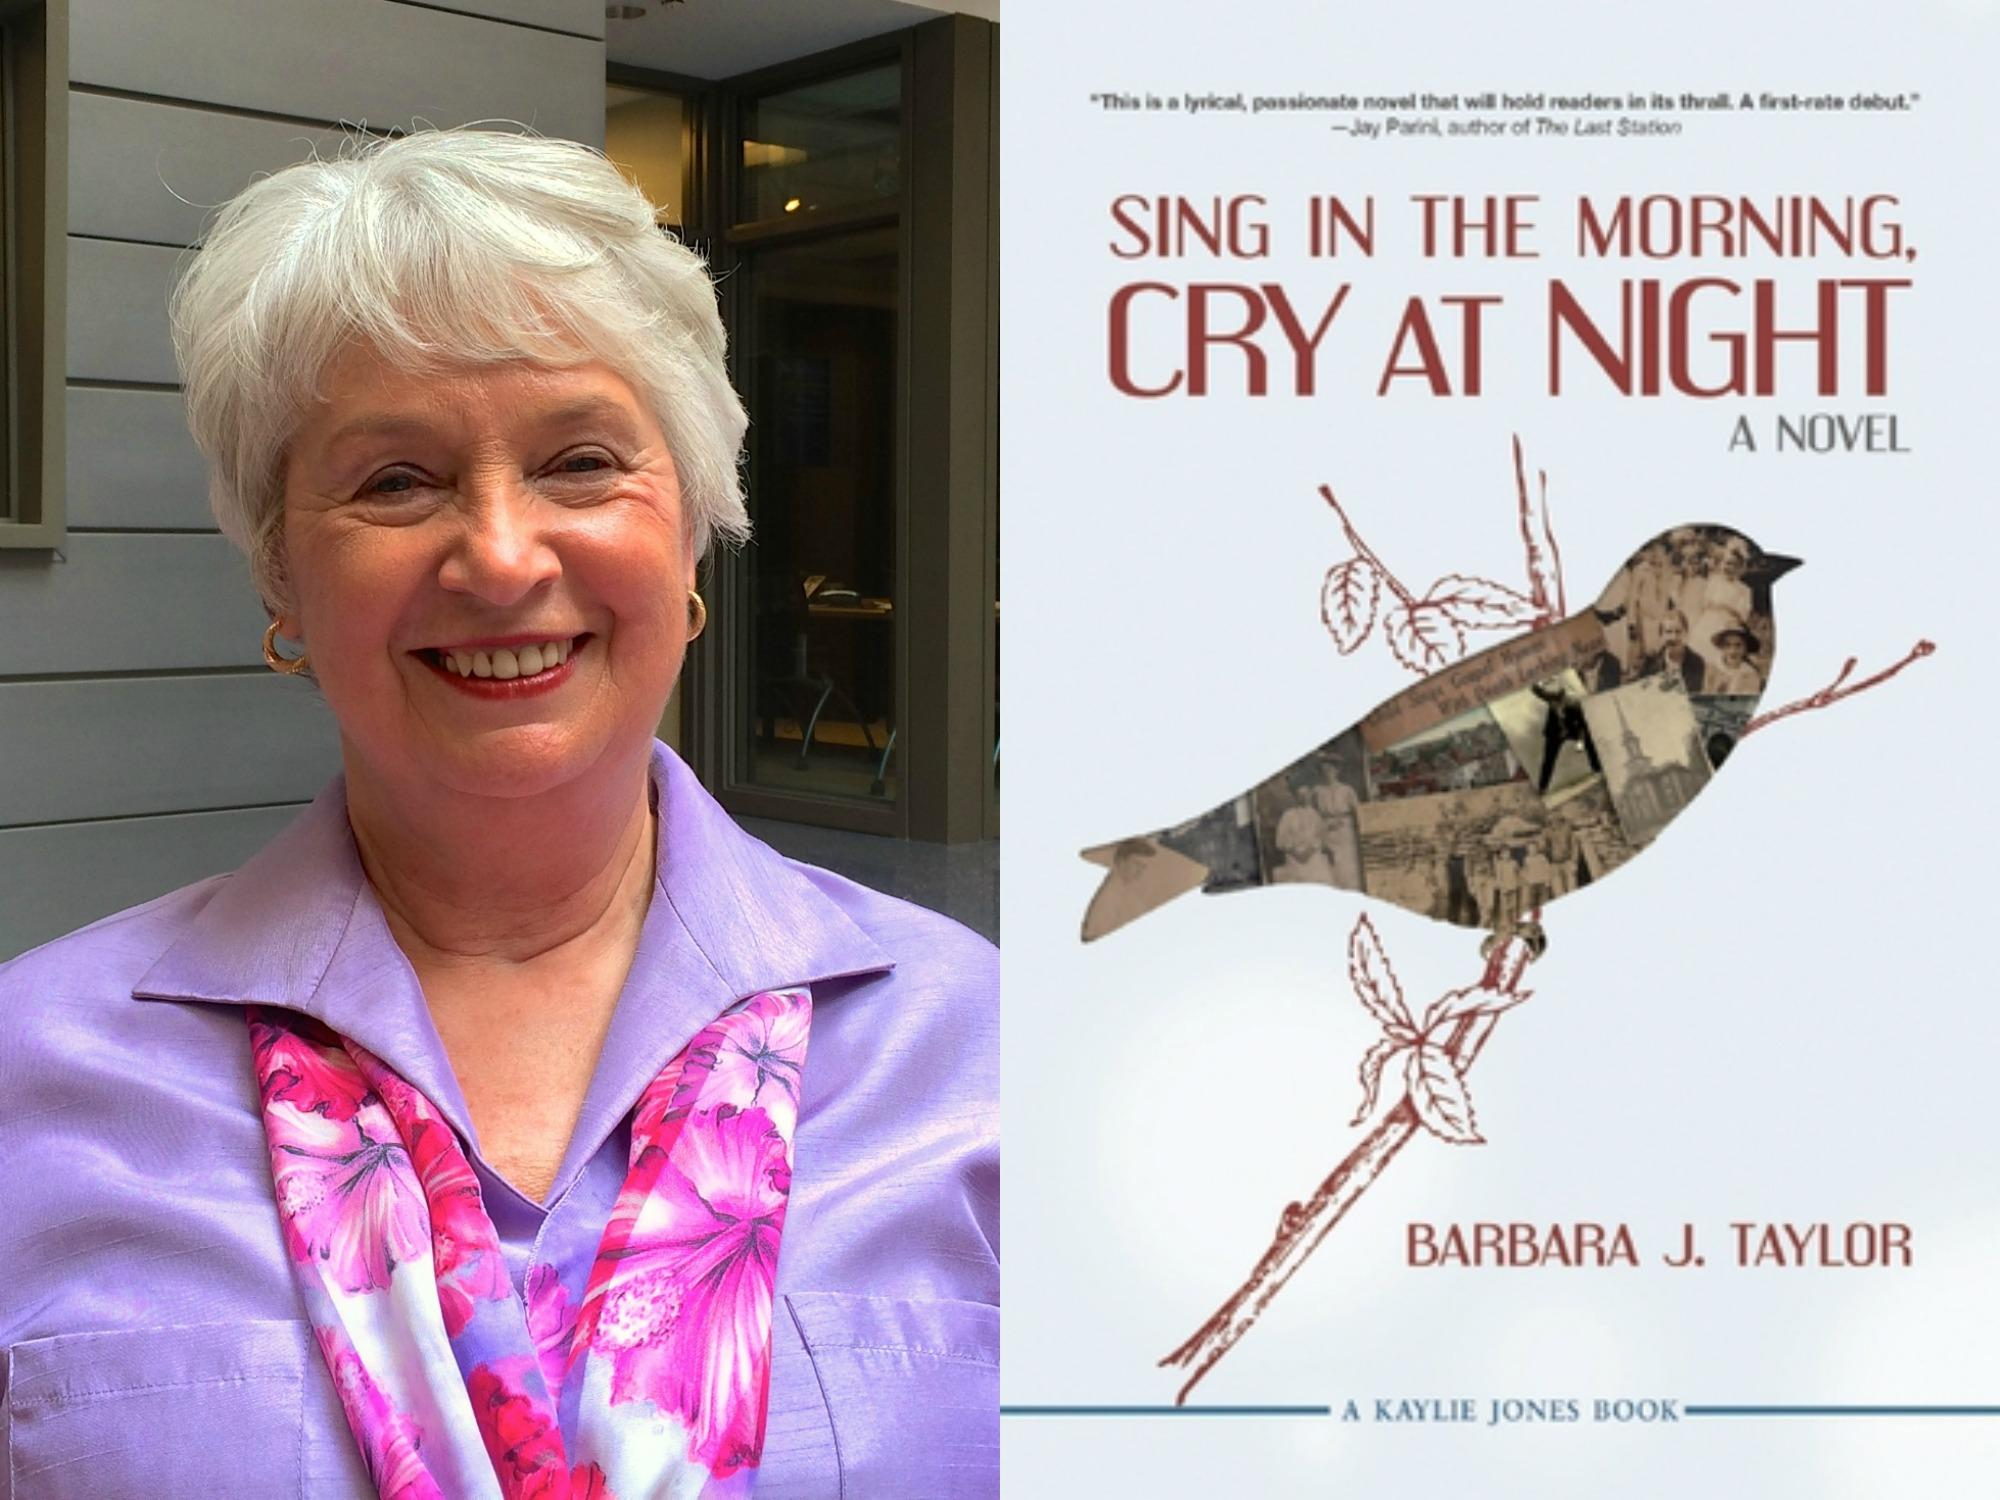 BookMark: Sing in the Morning, Cry at Night by Barbara Taylor | WPSU